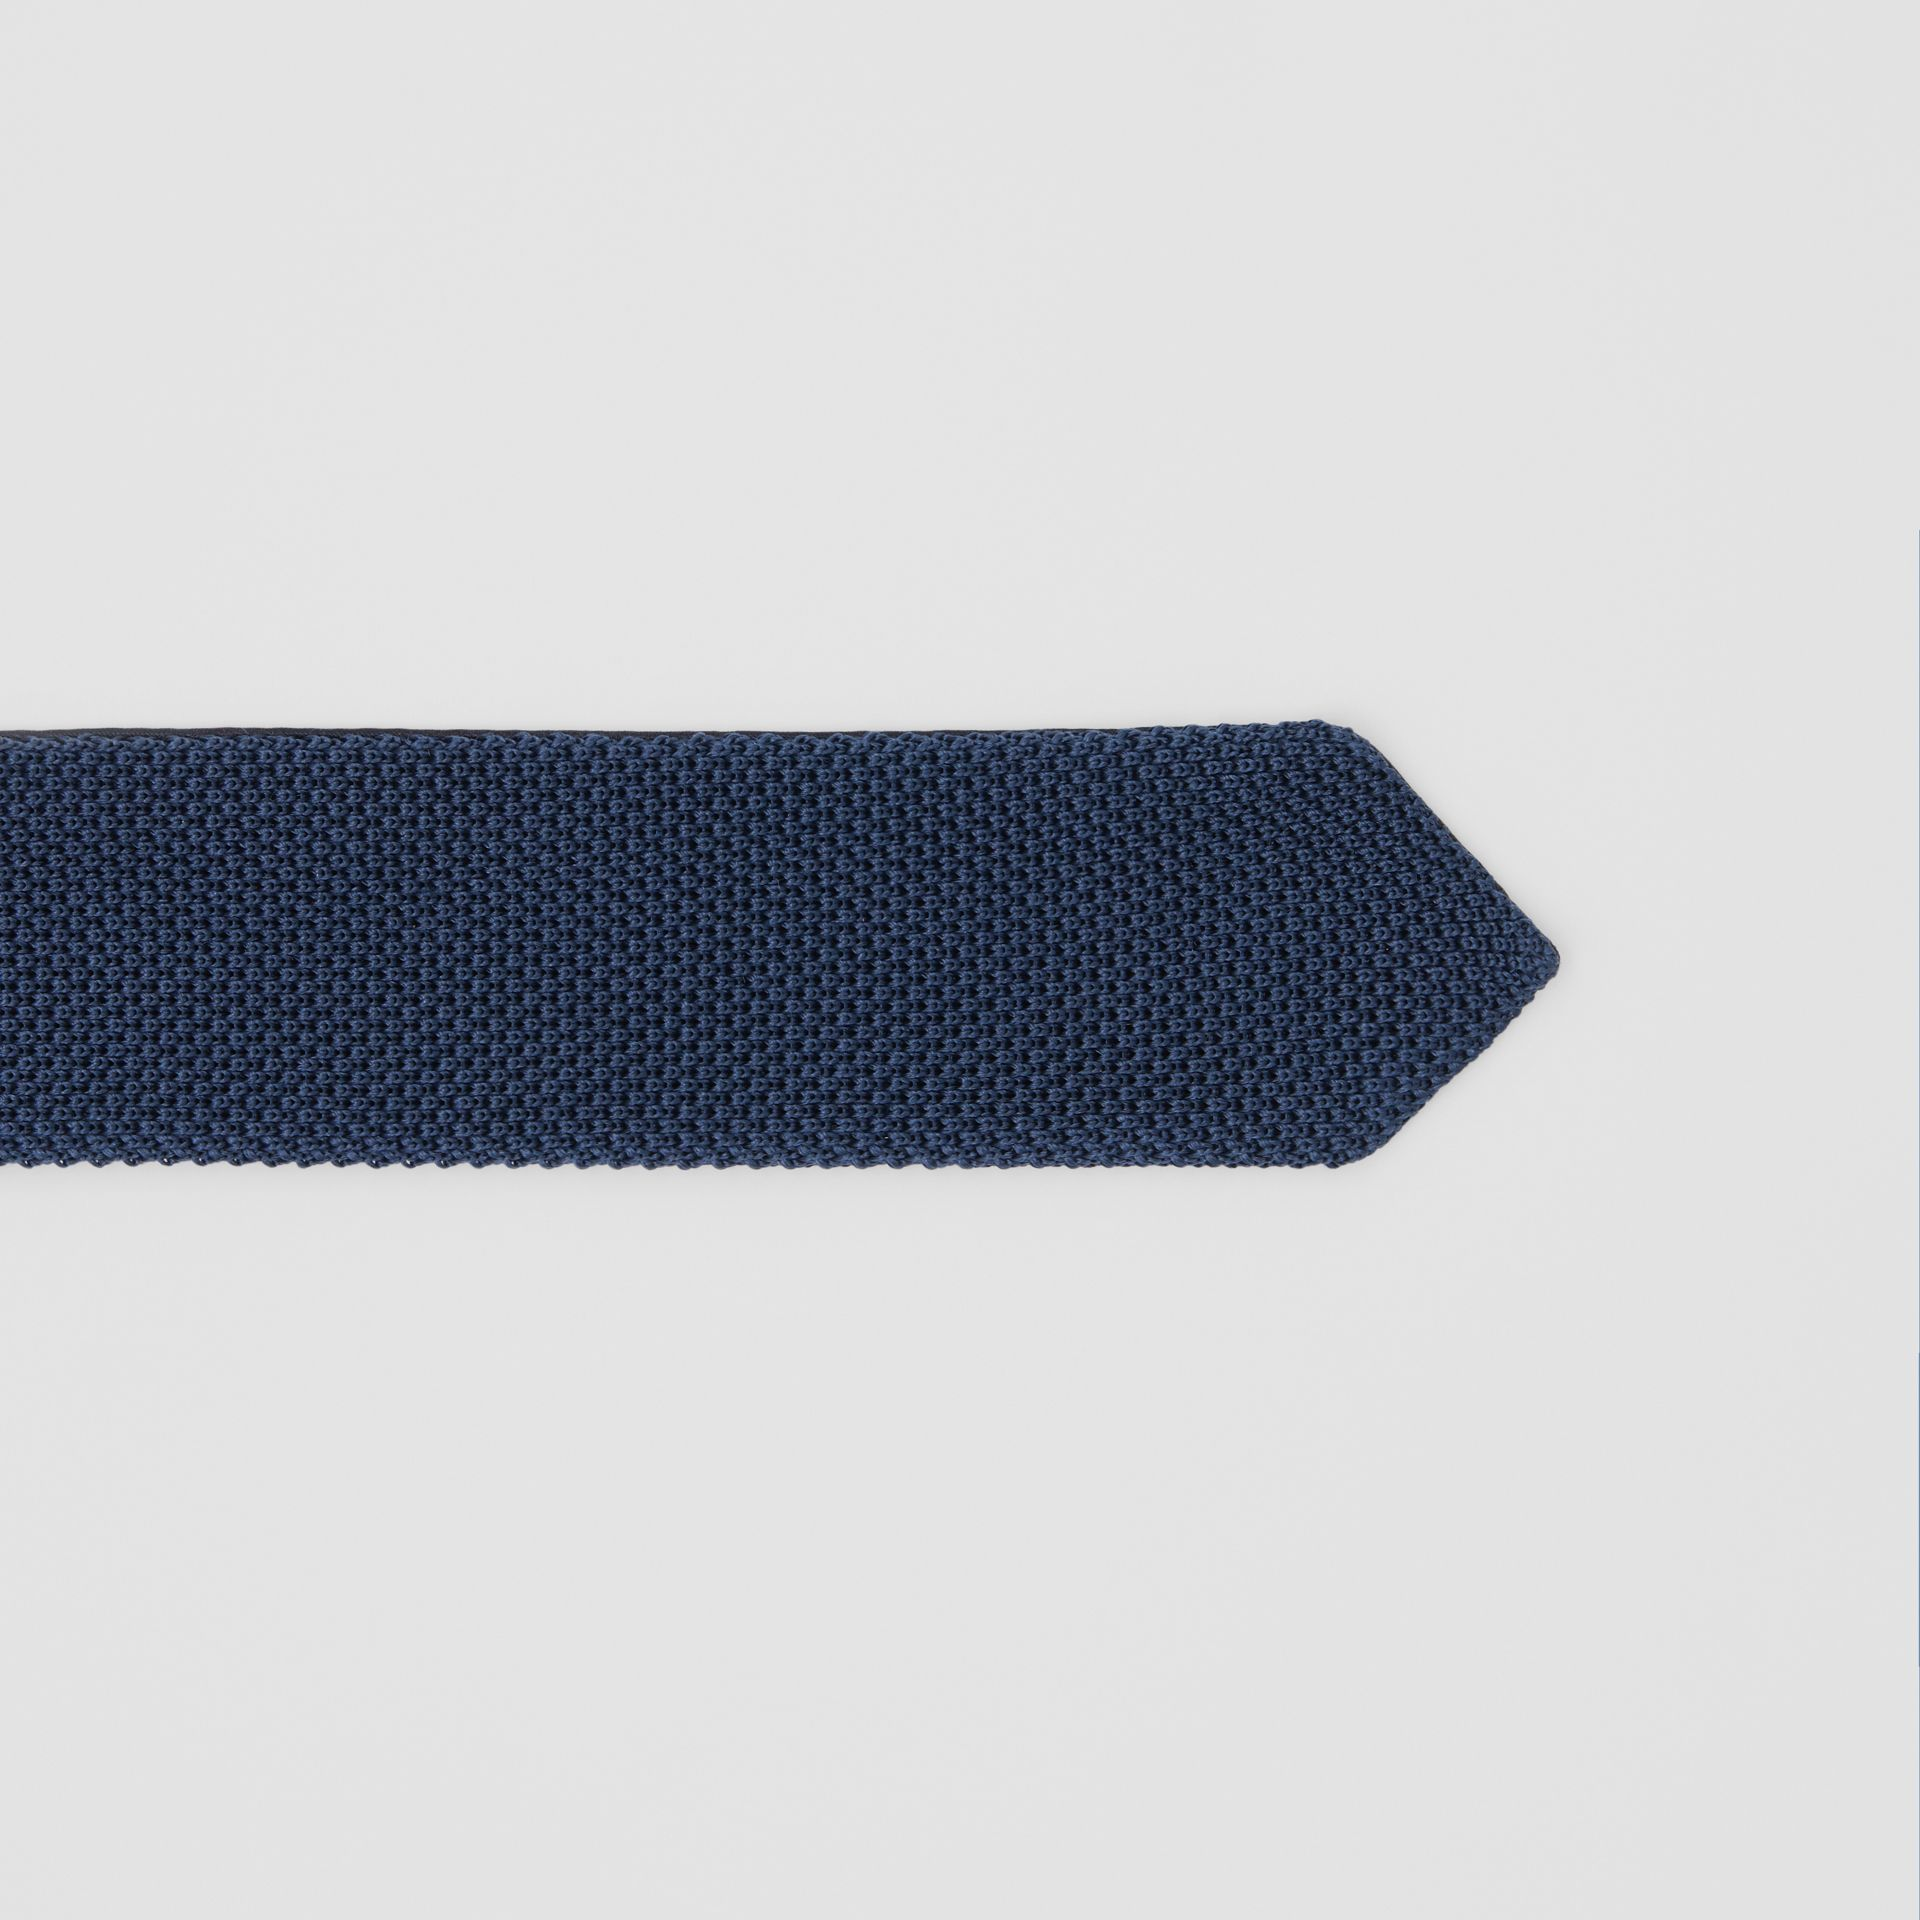 Slim Cut Knit Silk Tie in Navy - Men | Burberry Hong Kong S.A.R - gallery image 1